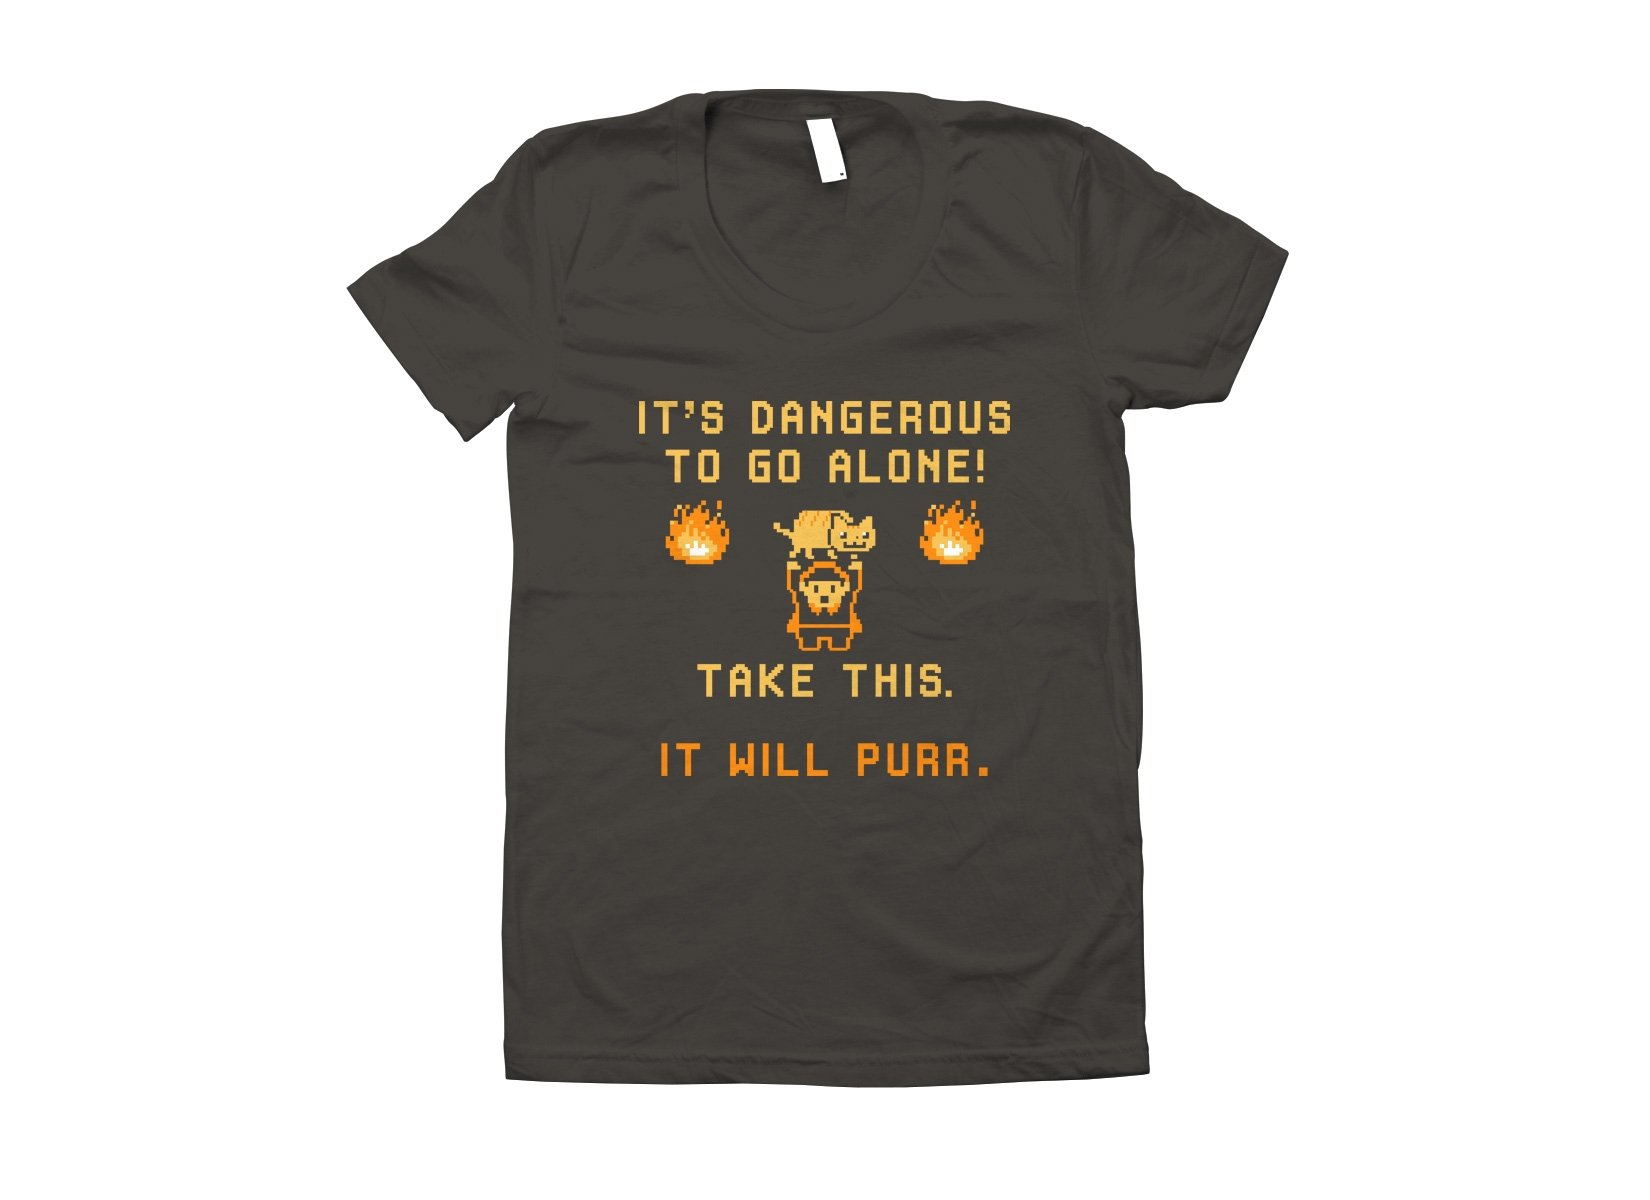 It's Dangerous To Go Alone on Juniors T-Shirt